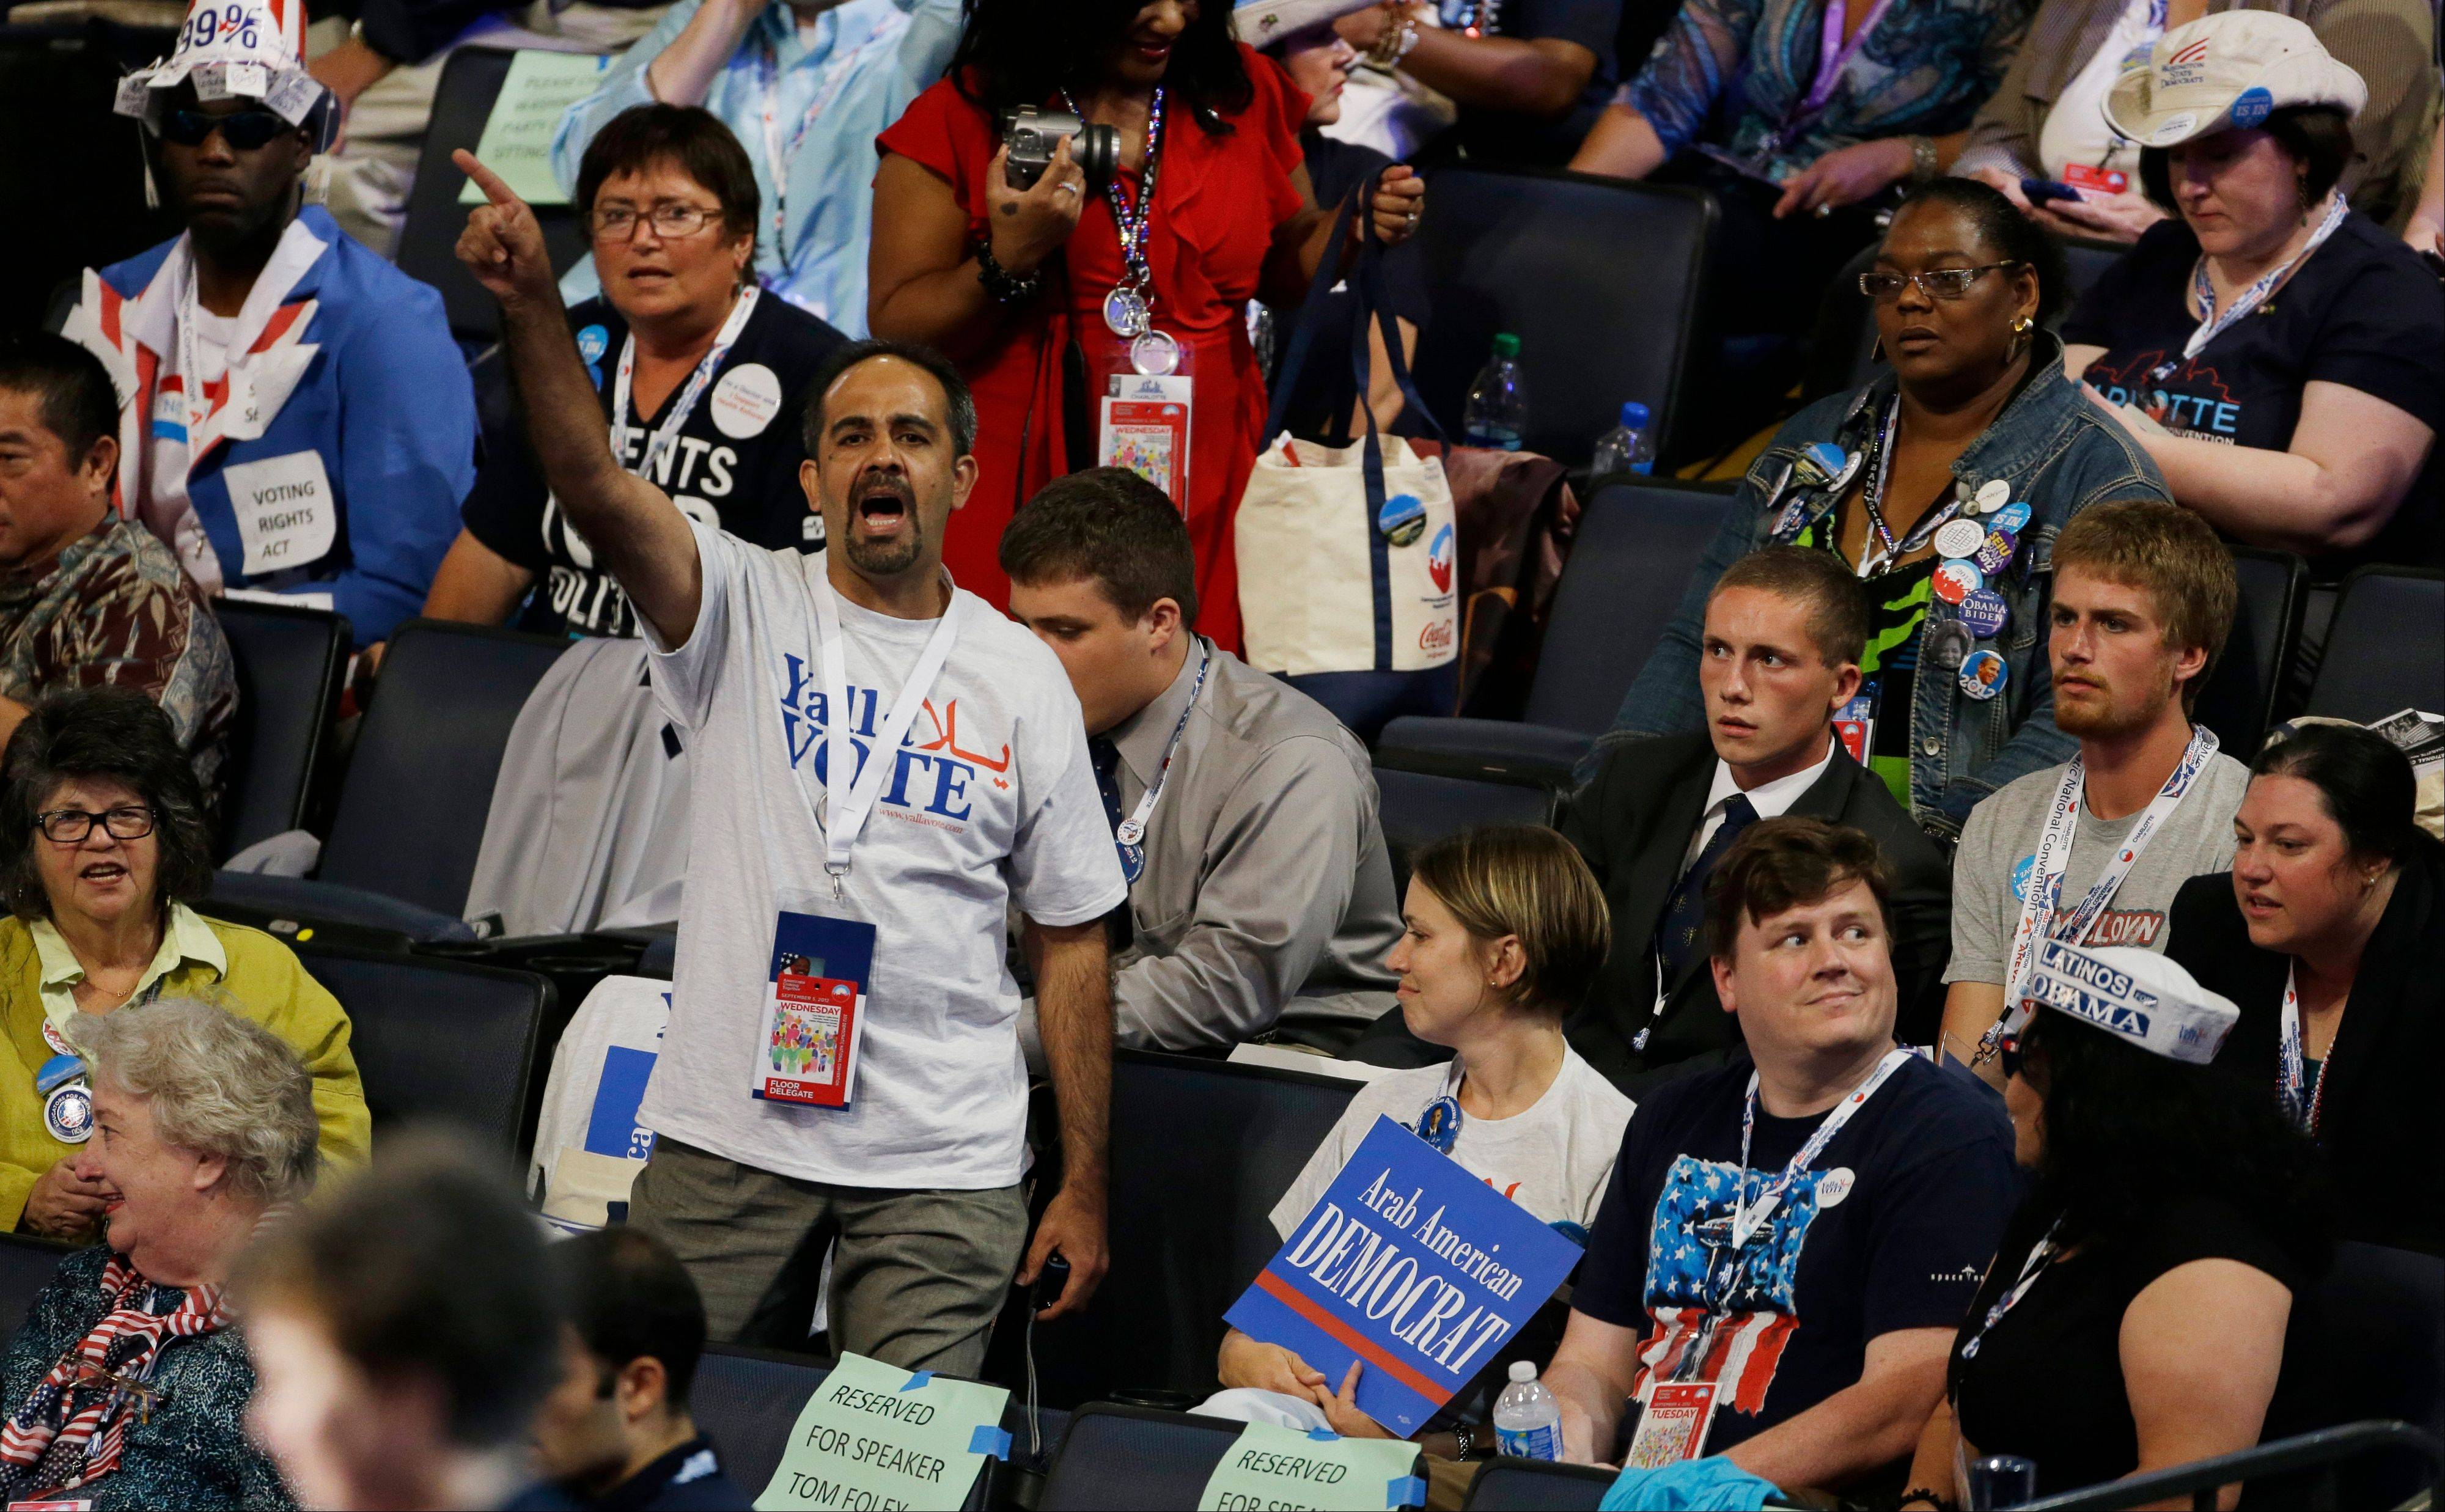 A delegate reacts after a vote held on the convention floor to pass a motion presented by Former Ohio Gov. Ted Strickland at the Democratic National Convention in Charlotte, N.C., Wednesday.